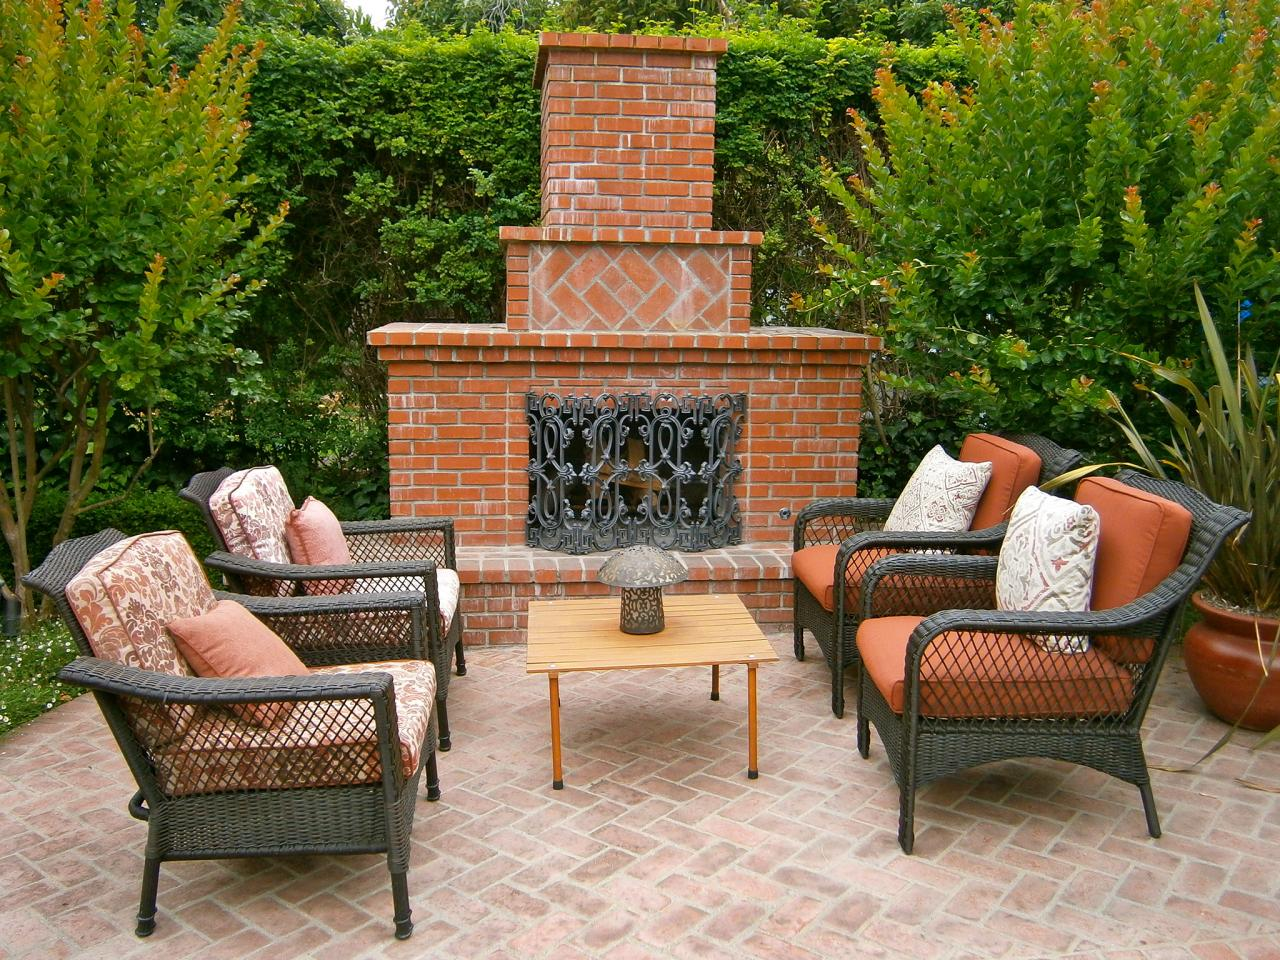 brick masonry - outdoor brick fireplace